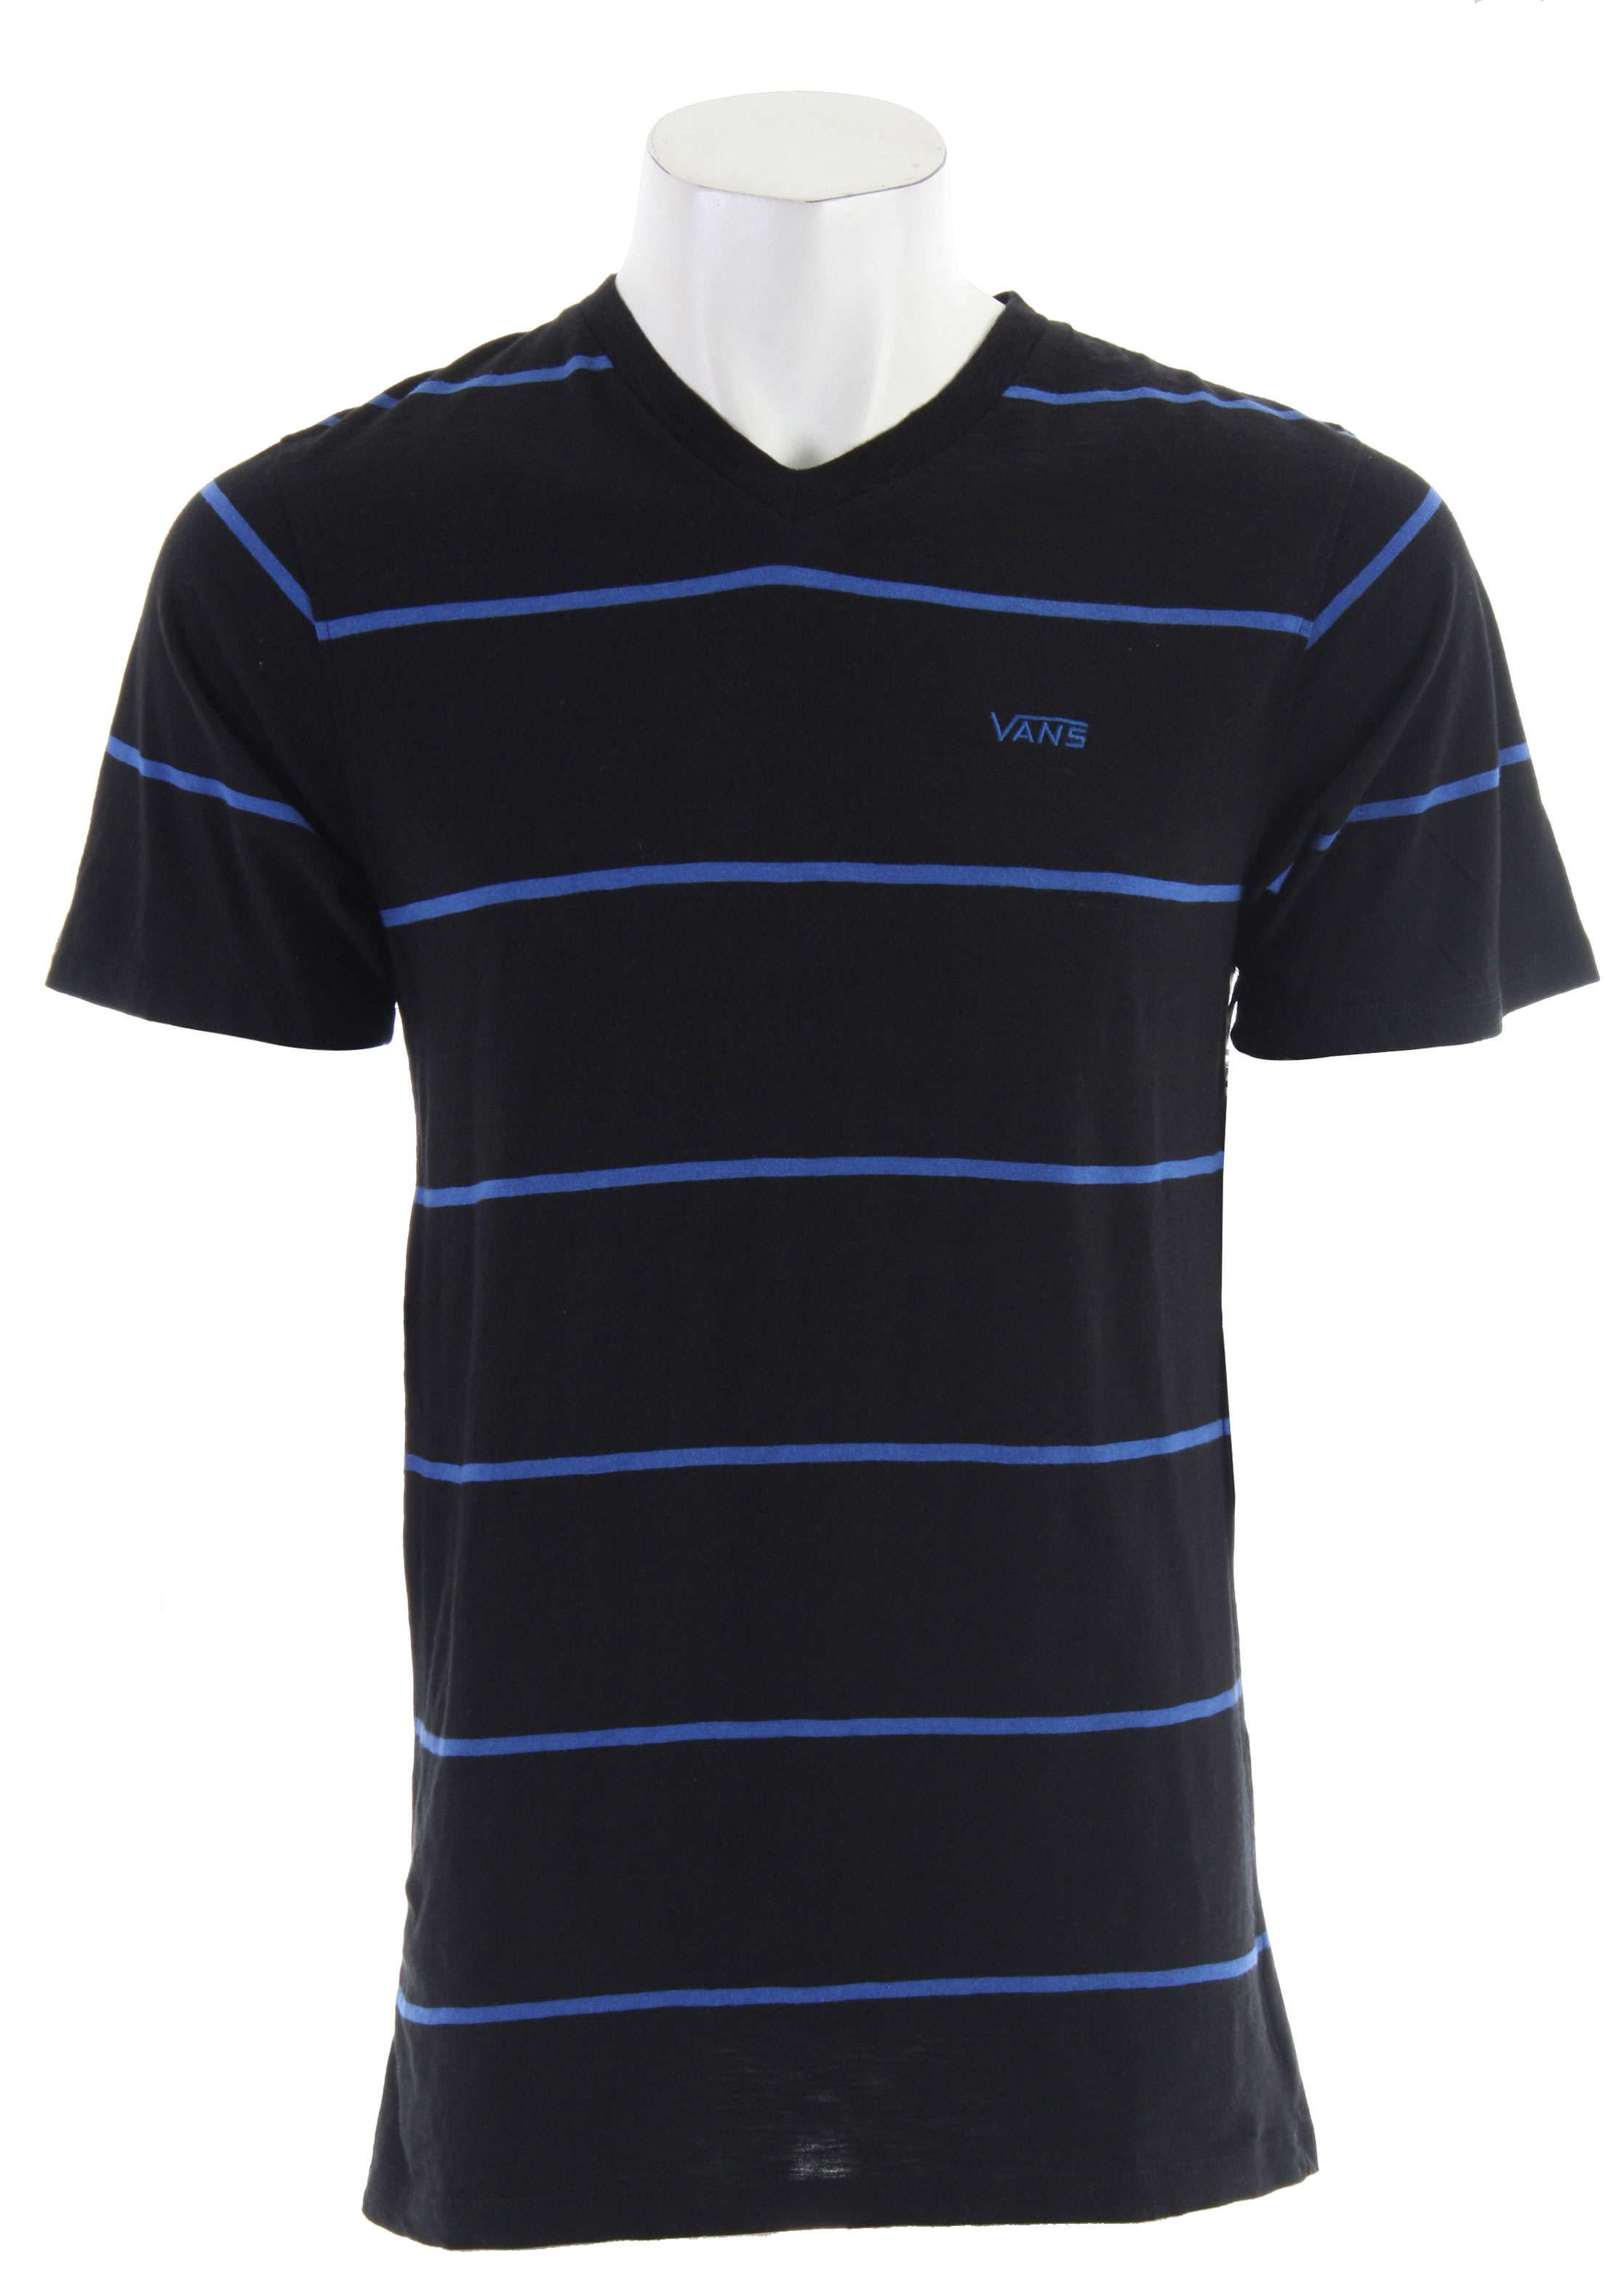 Golf The striped Vans Diffuse T-Shirt offers the clean look of a polo or golf shirt in the form of a comfortable and versatile V-neck tee. Their premium material construction also proves to be durable and breathable enough for more strenuous action sport wear. On the chest is an original Vans logo embroidery. Made of soft 100% cotton. - $27.95